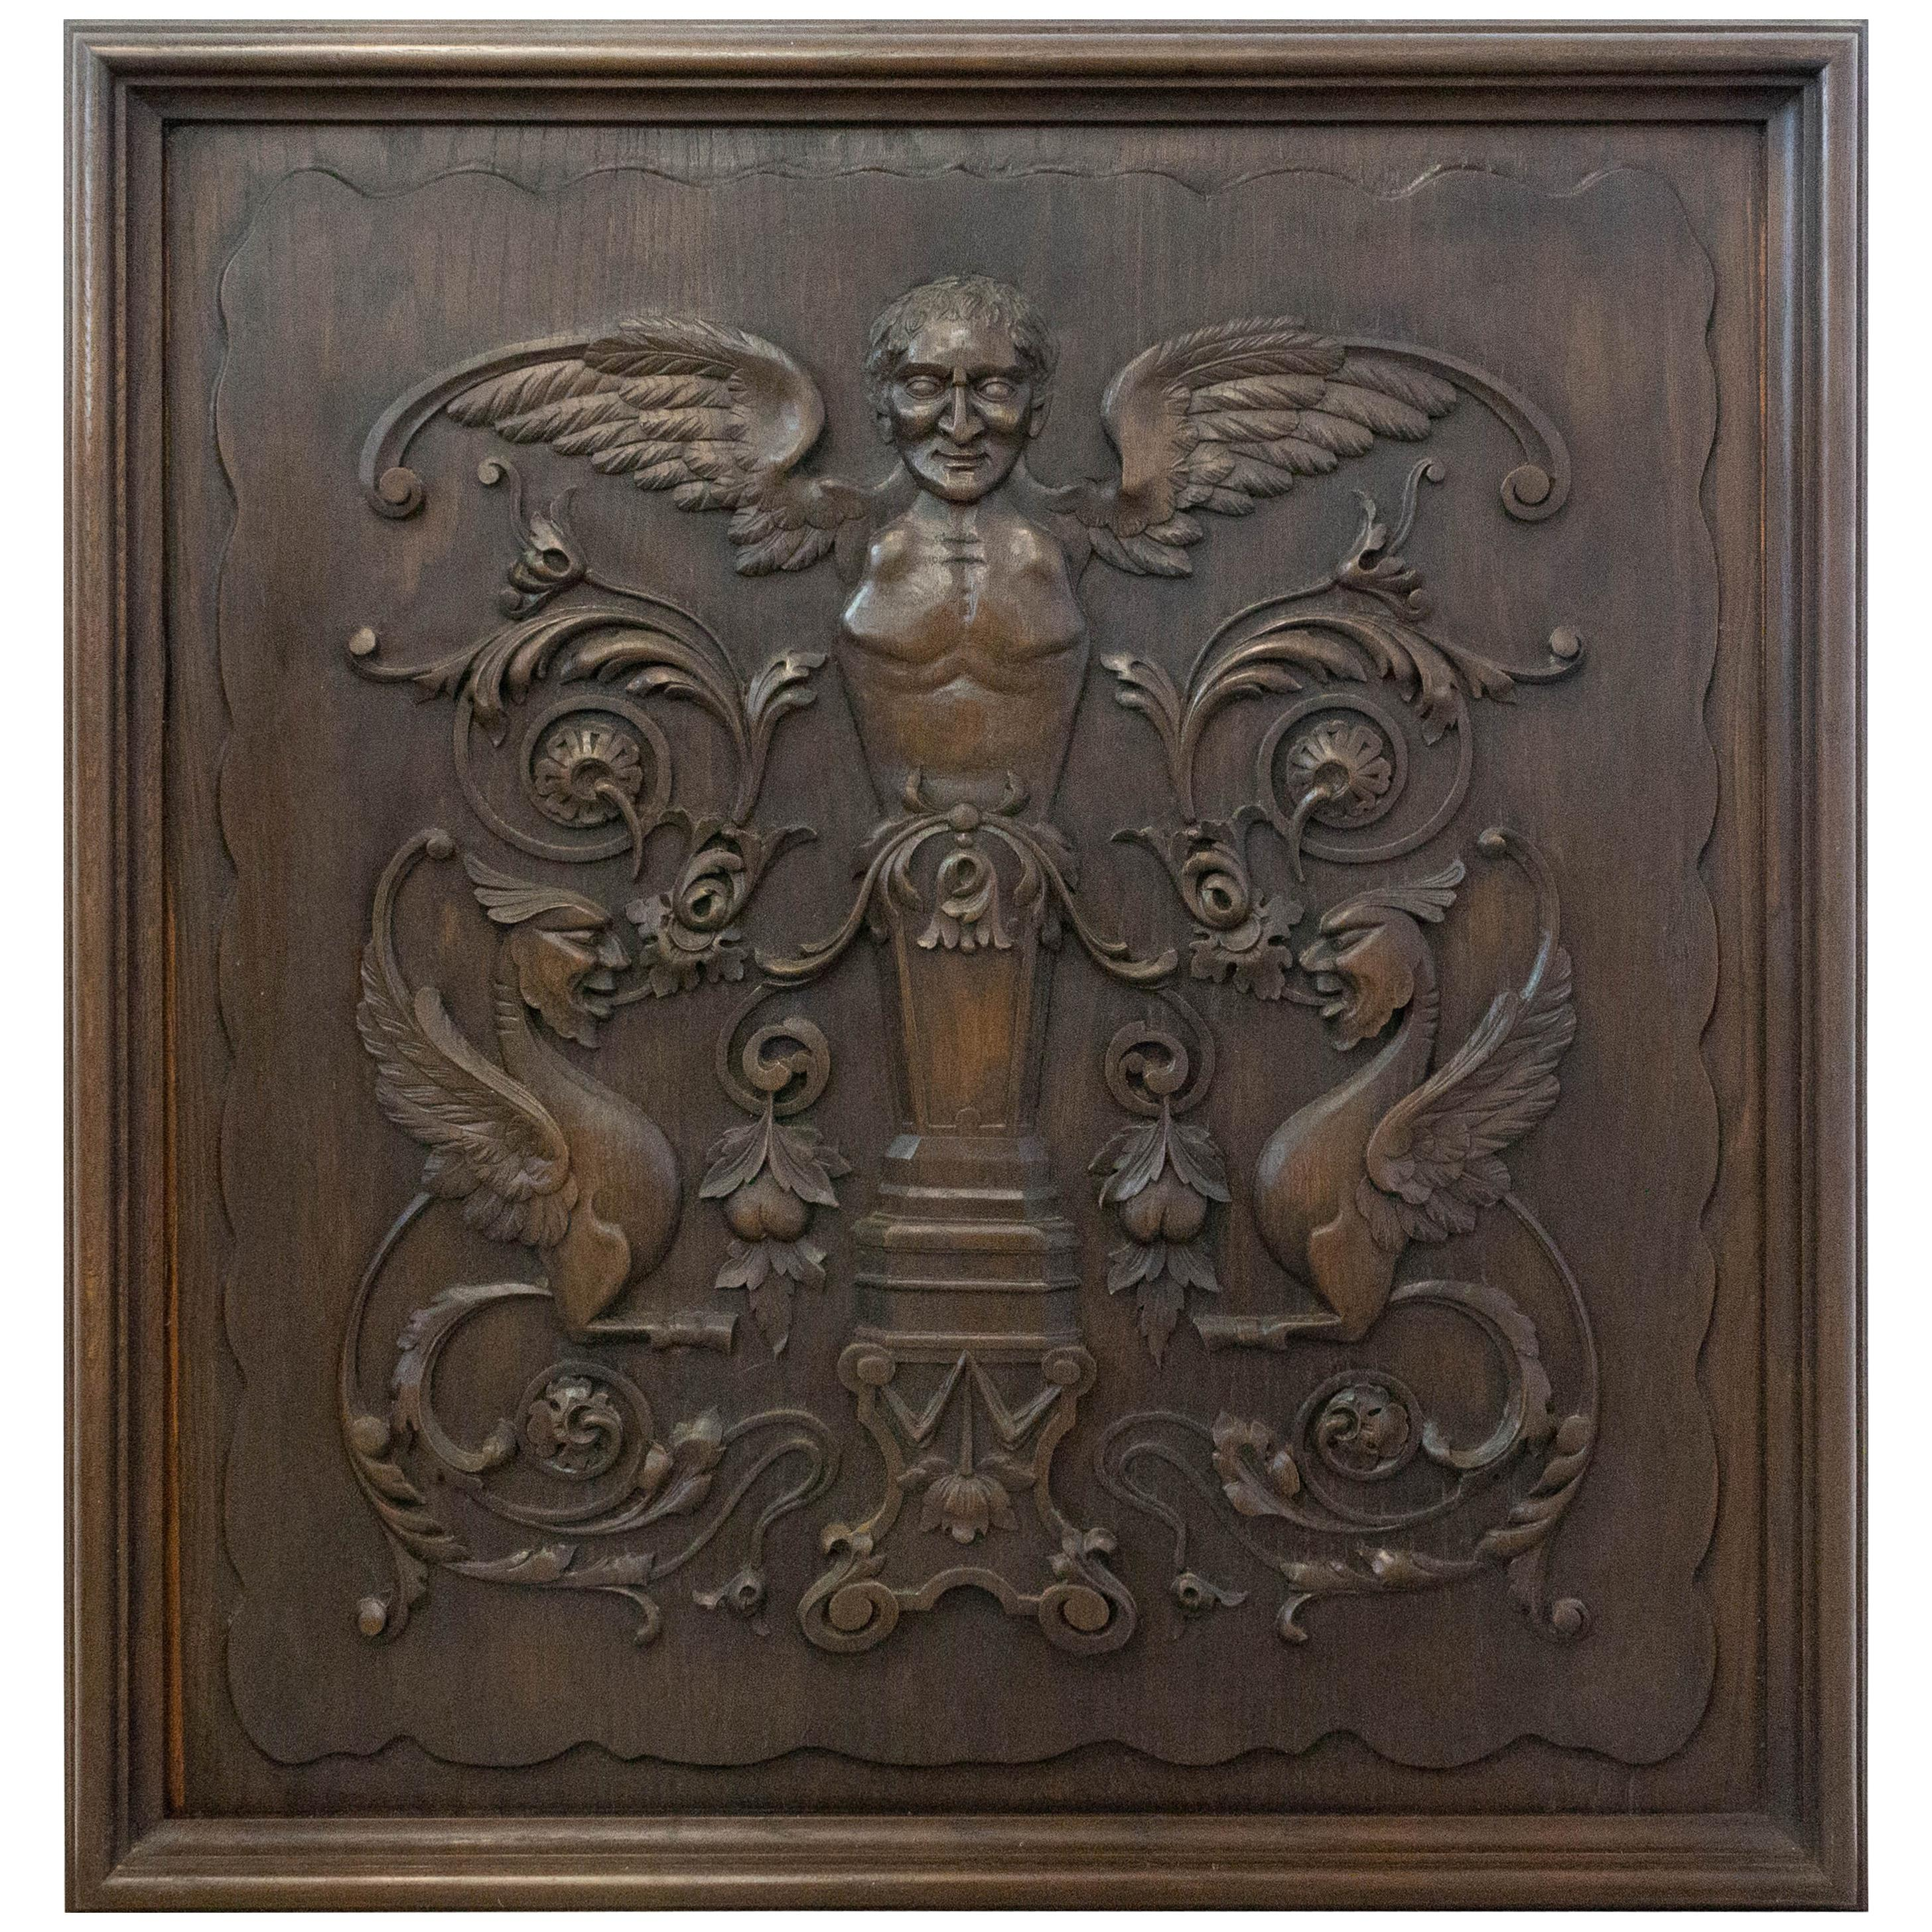 19th Century Carved Wood Panel French One of Kind Renaissance Chimera Plaque